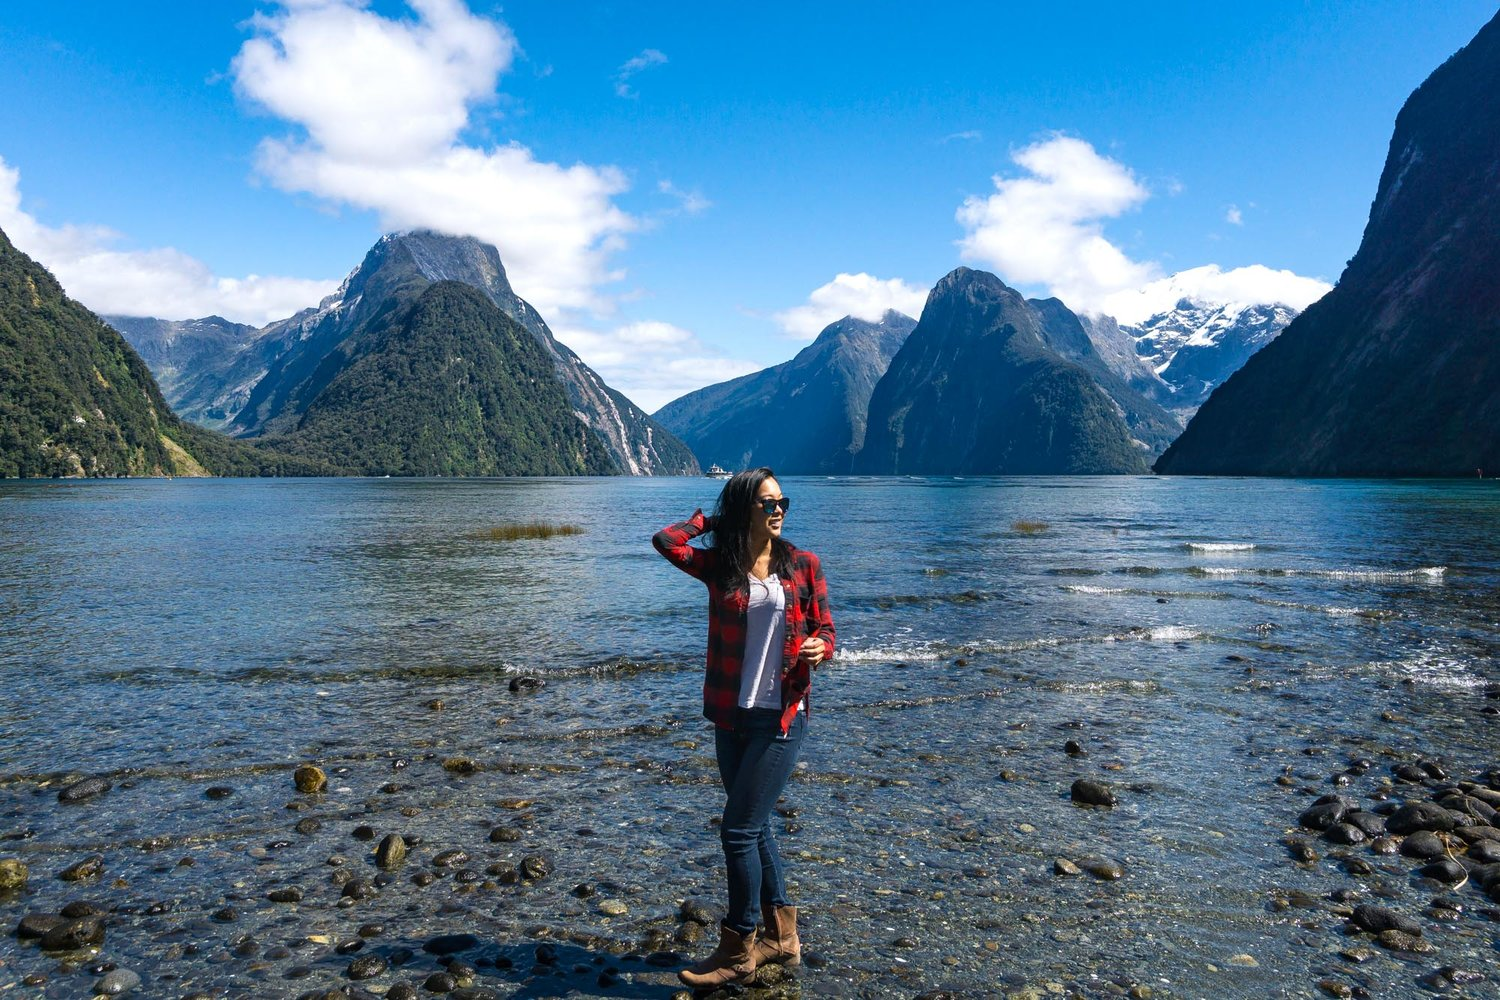 New Zealand South Island 10 Day Roadtrip Itinerary For The Outdoor Lover